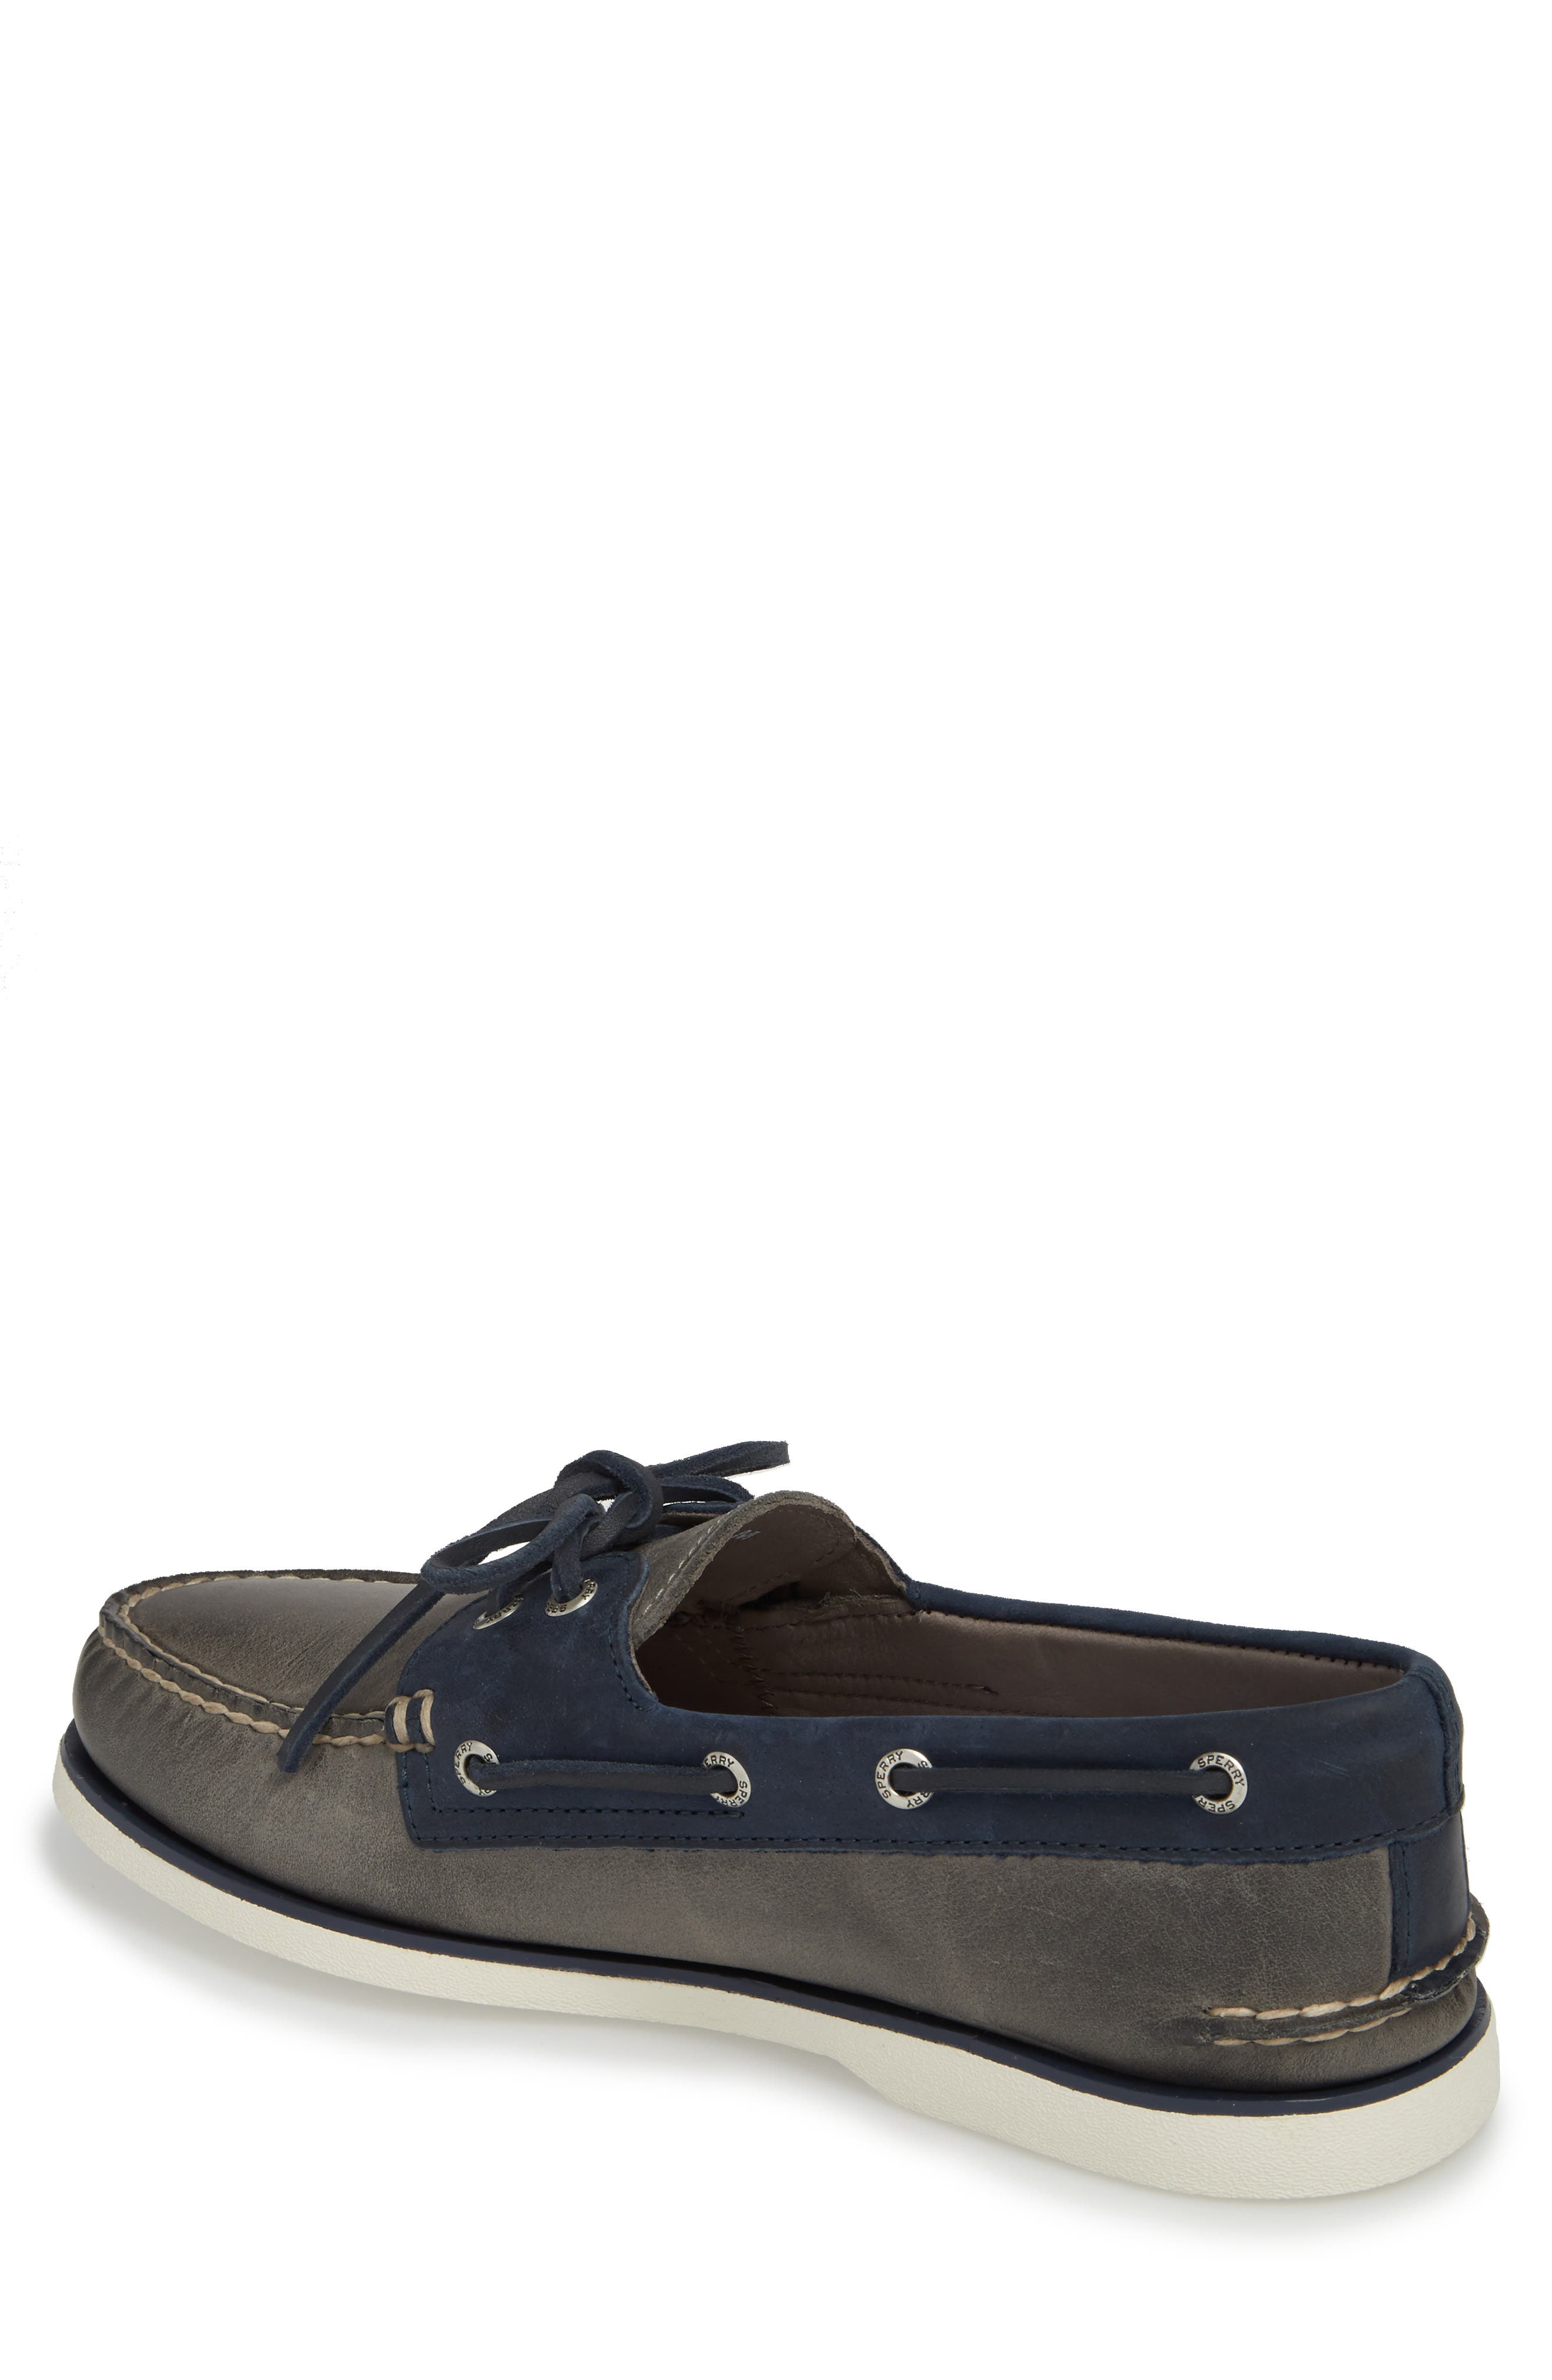 SPERRY, Gold Cup Authentic Original Boat Shoe, Alternate thumbnail 2, color, GREY/ NAVY LEATHER